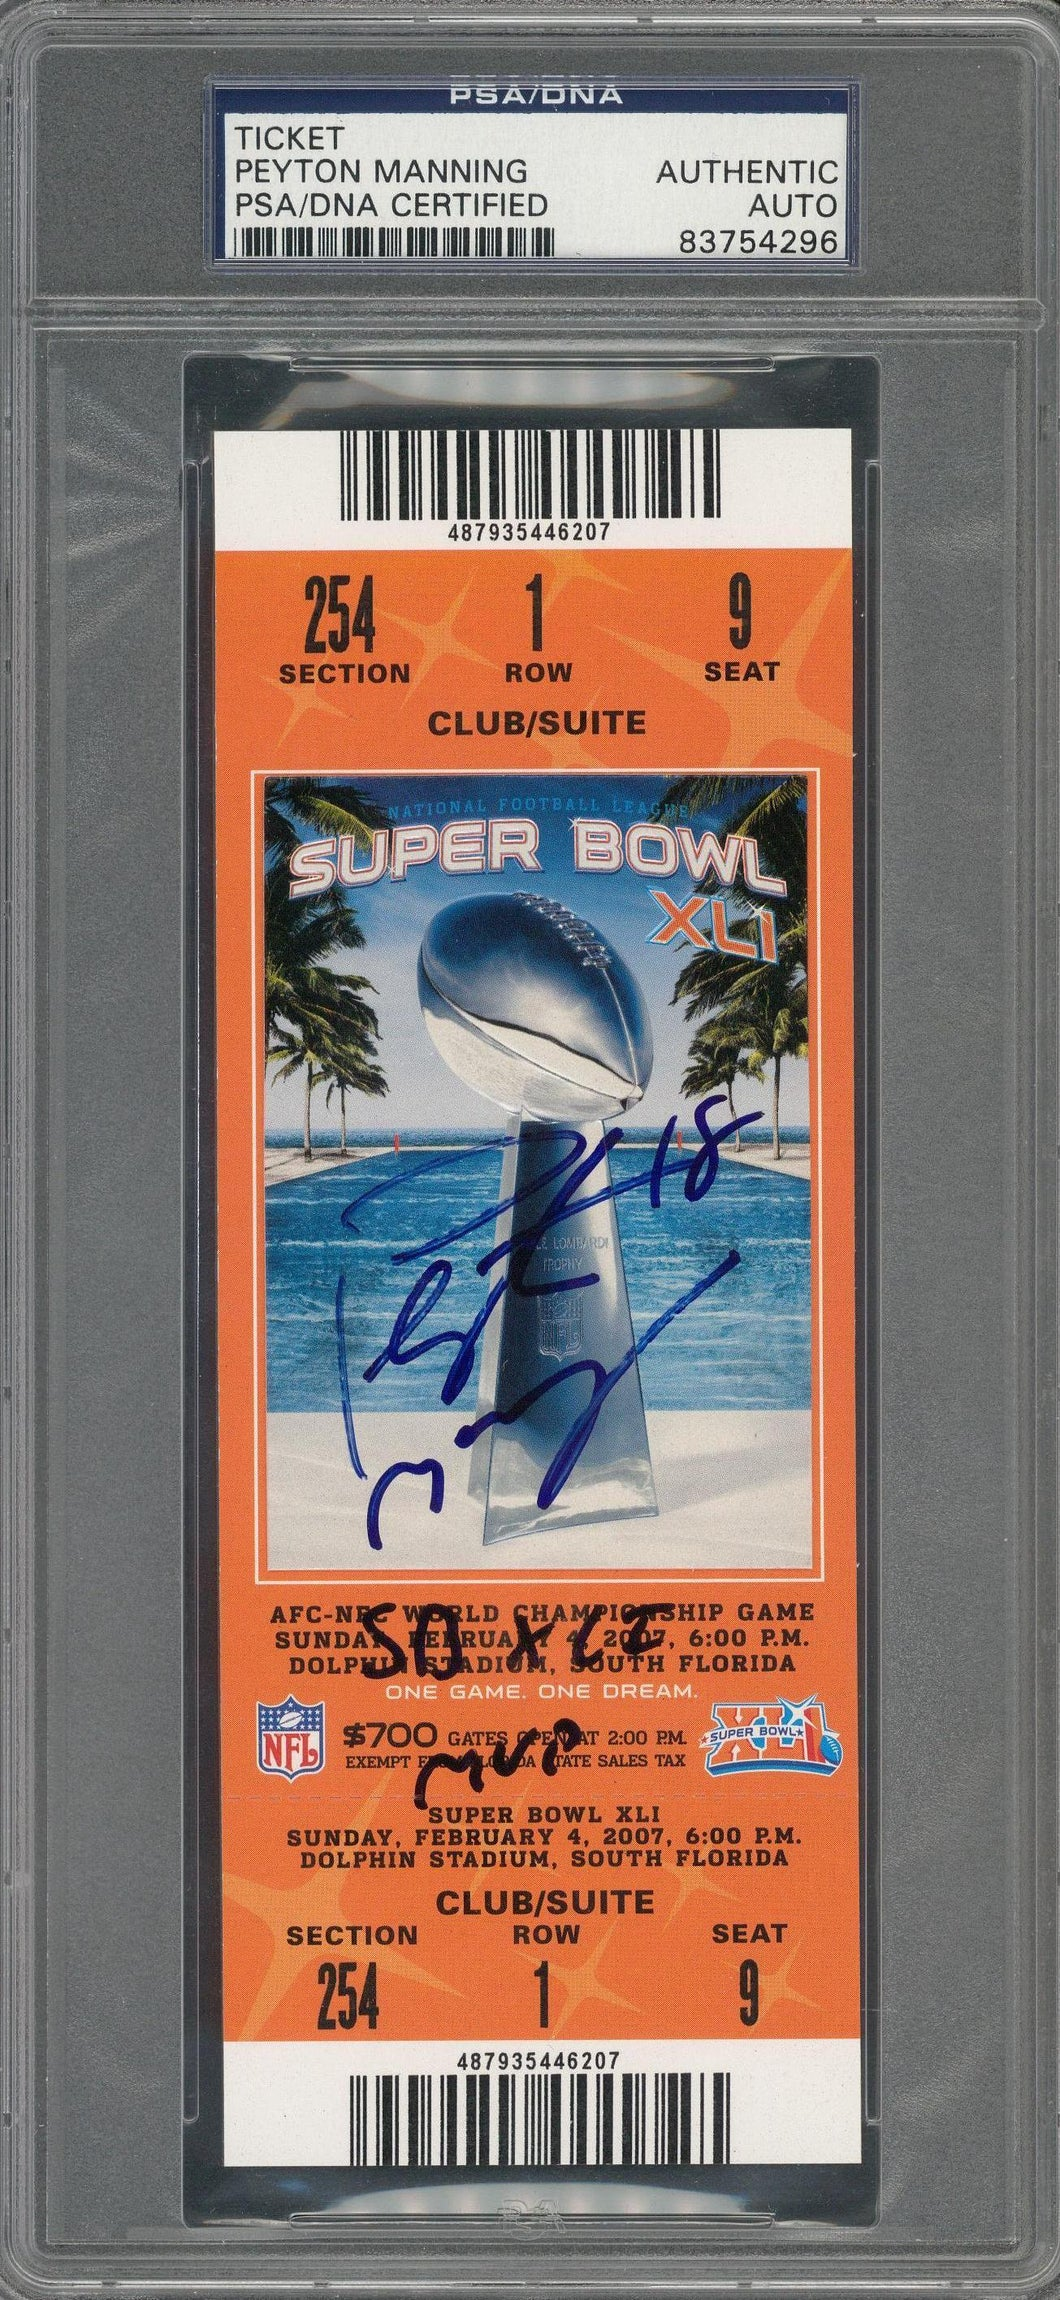 2007 Peyton Manning Signed Superbowl XLI Full Ticket with